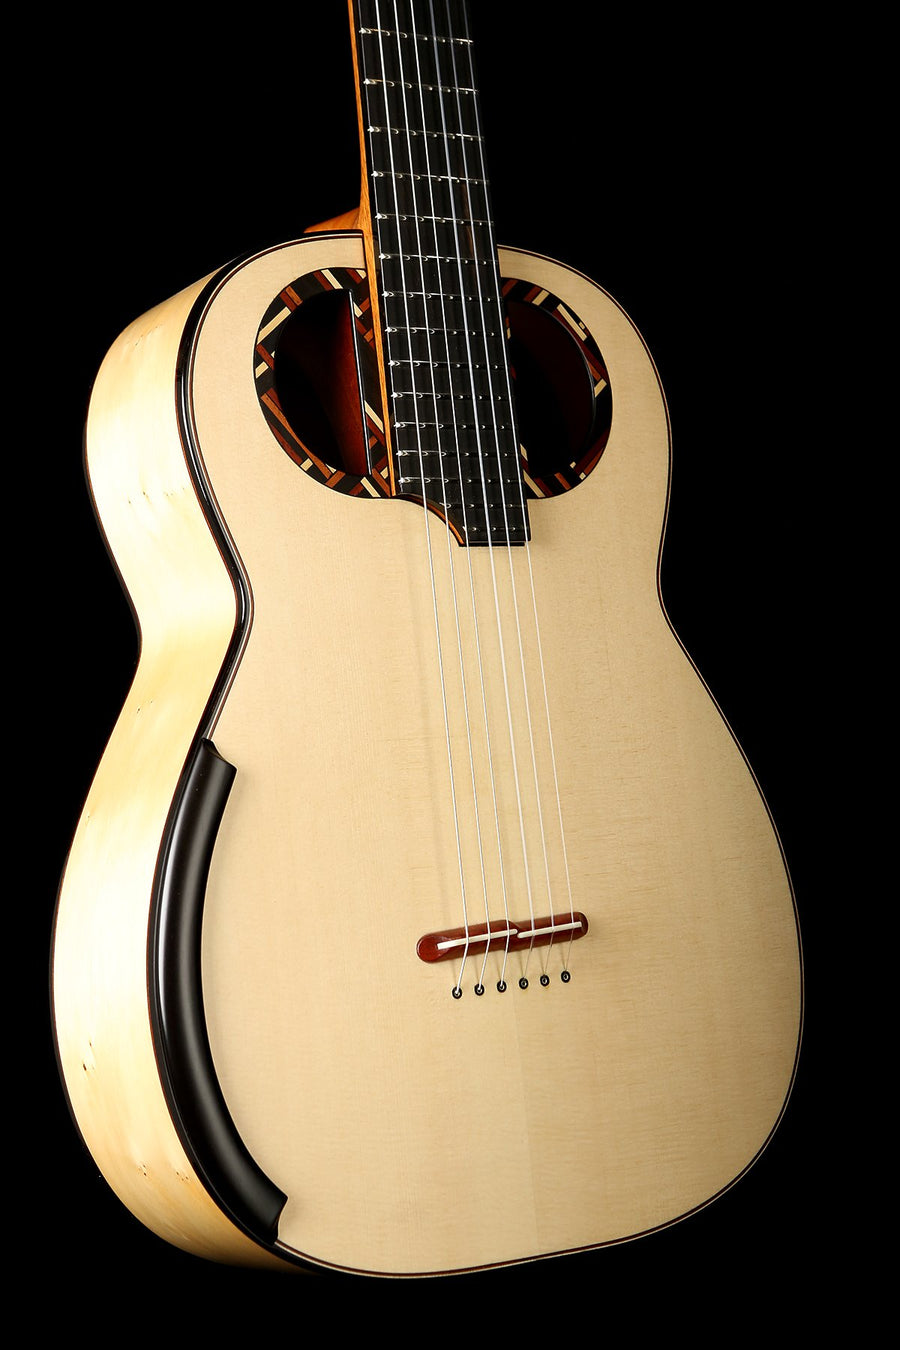 Allan Bull 'Evo' Model CLE1118 Classical Guitar